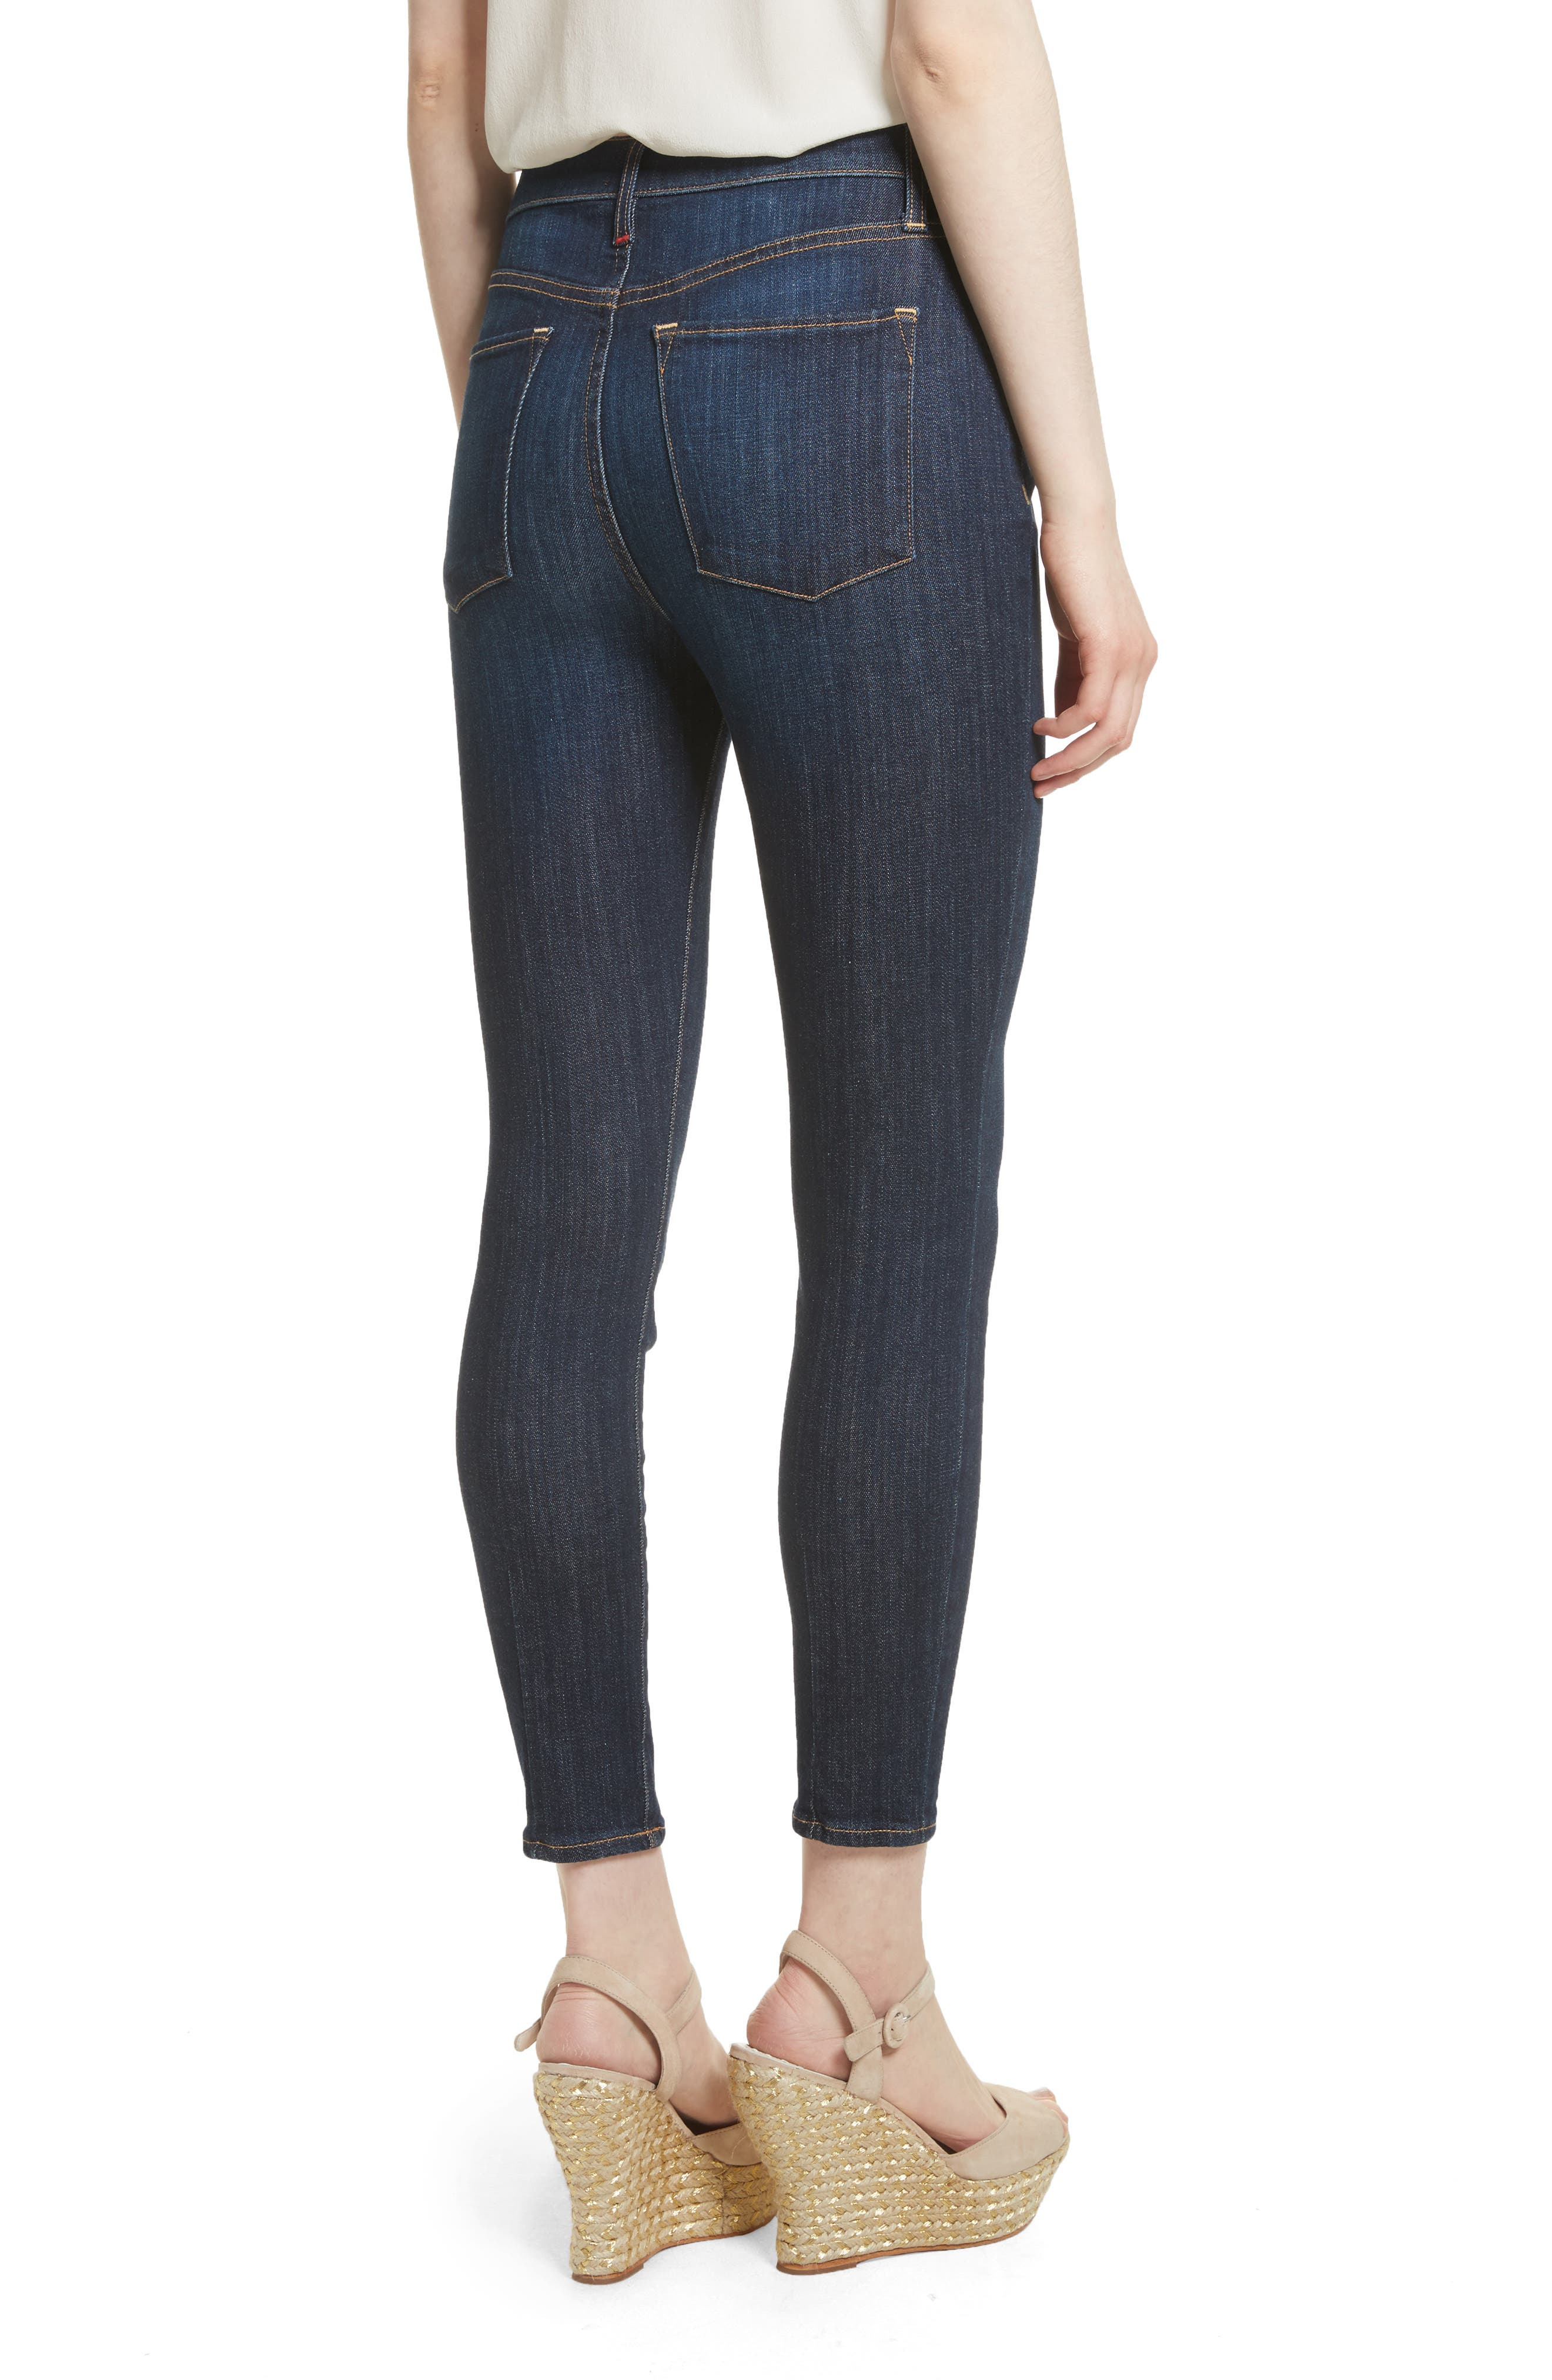 AO.LA Good High Waist Exposed Button Skinny Jeans,                             Alternate thumbnail 2, color,                             Dream On